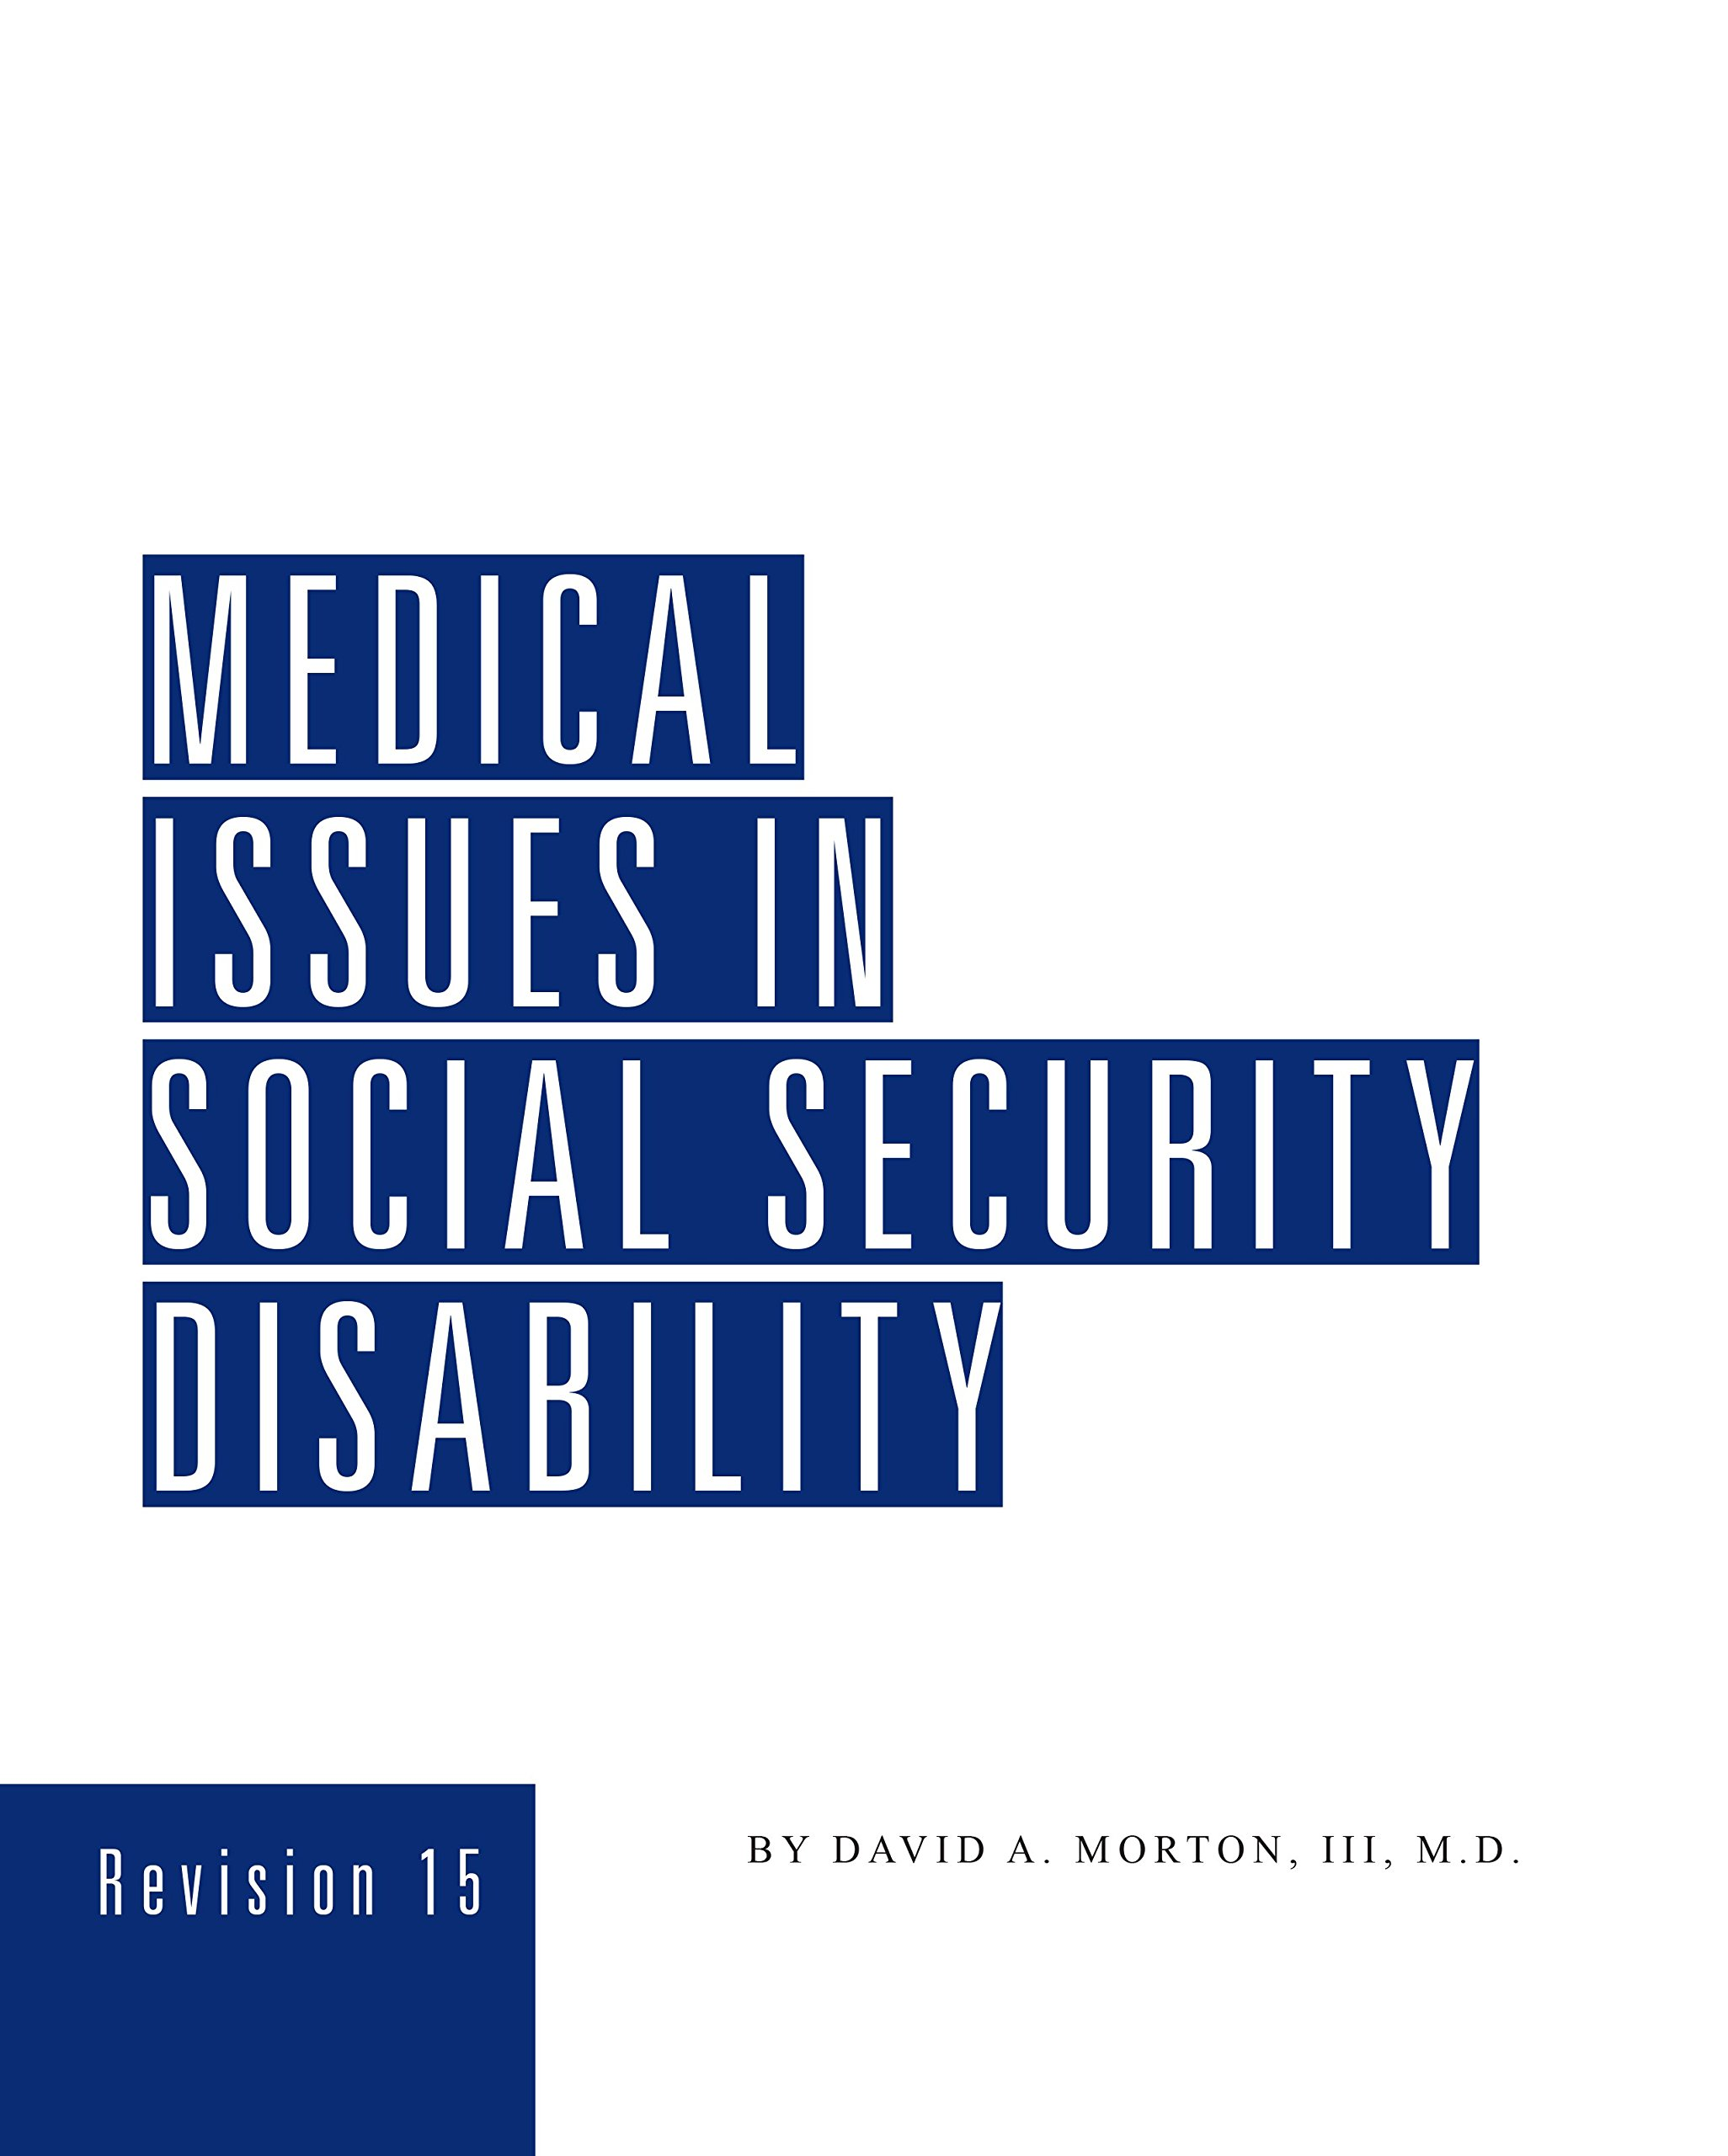 Medical Issues in Social Security Disability (Revision 15) by James Publishing